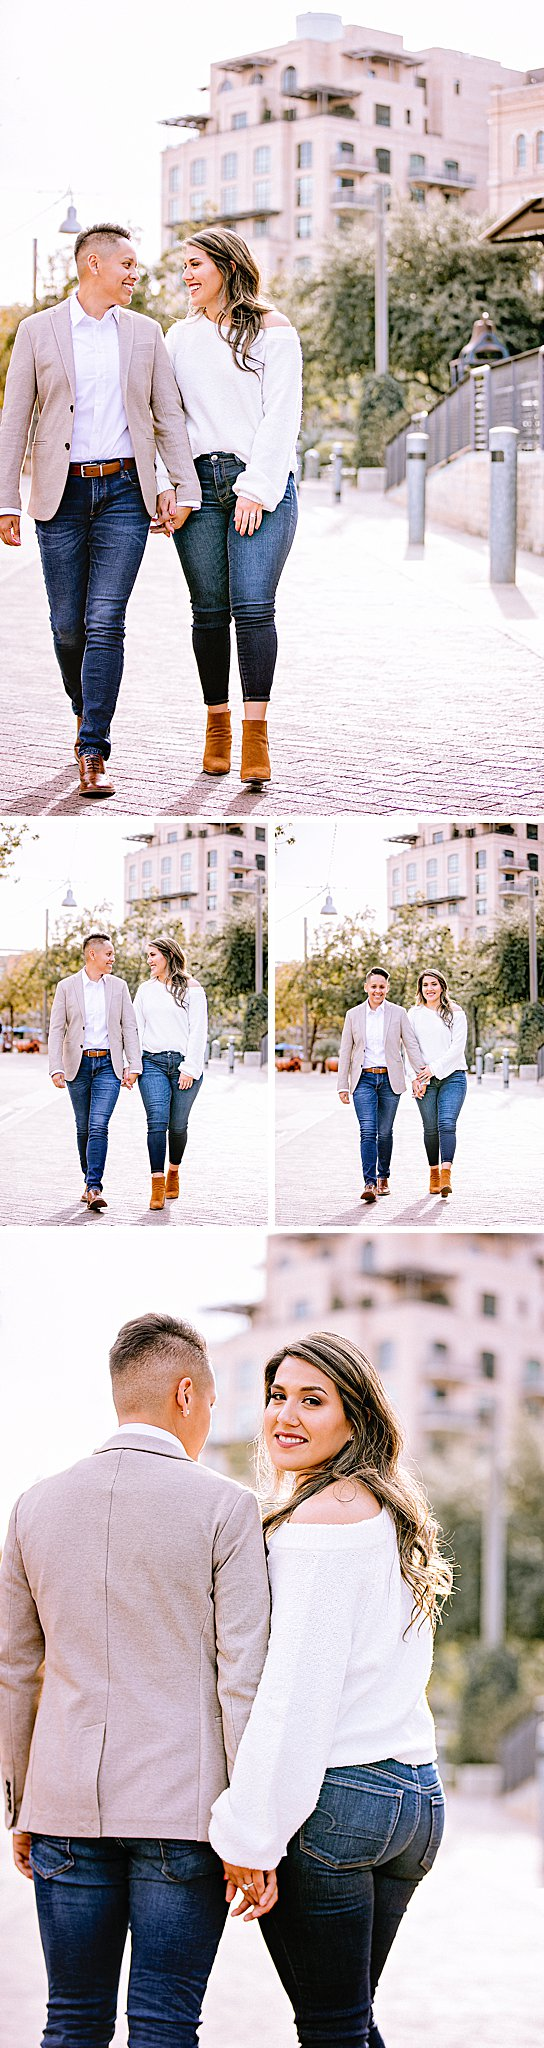 Carly-Barton-Photography-Texas-Engagement-Photographer-The-Historic-Pearl-San-Antonio_0009.jpg